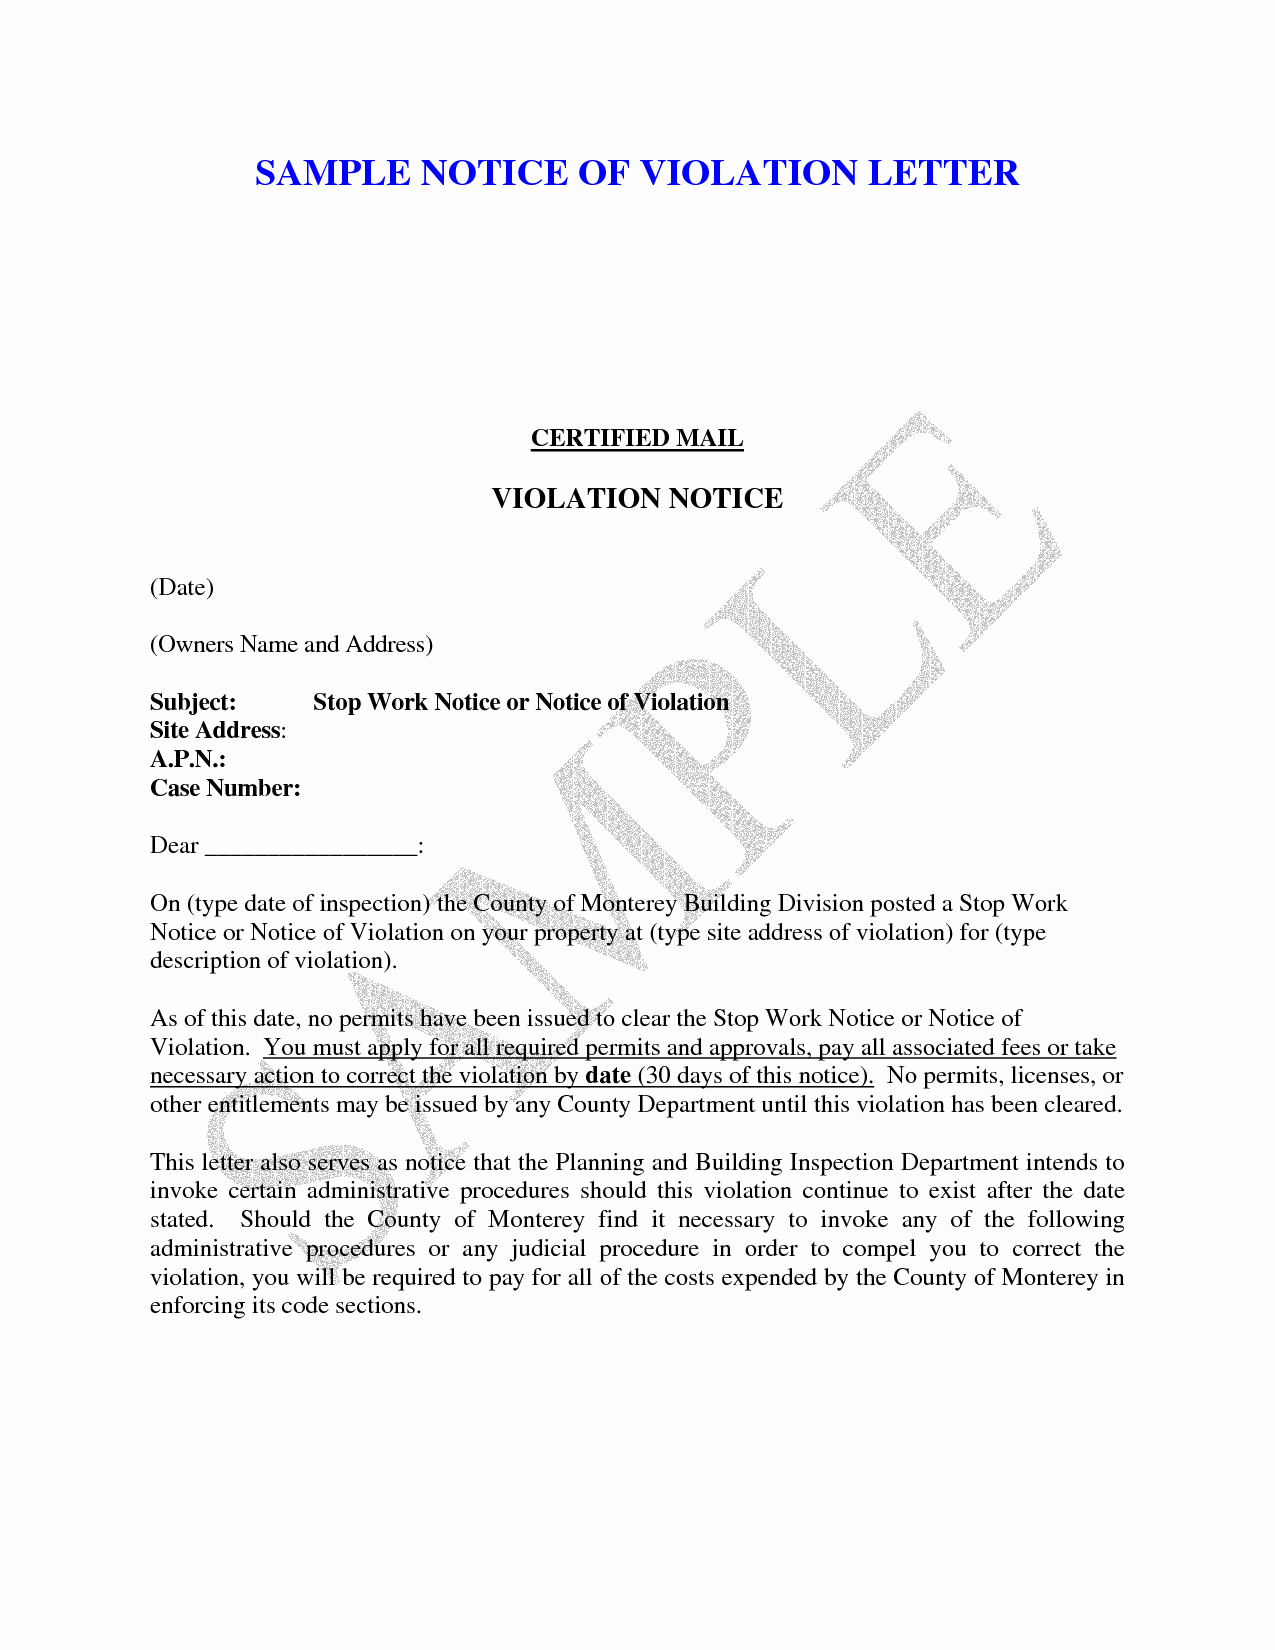 Notice Of Violation Letter Sample Awesome Best S Of Notice Violation Letter Template for